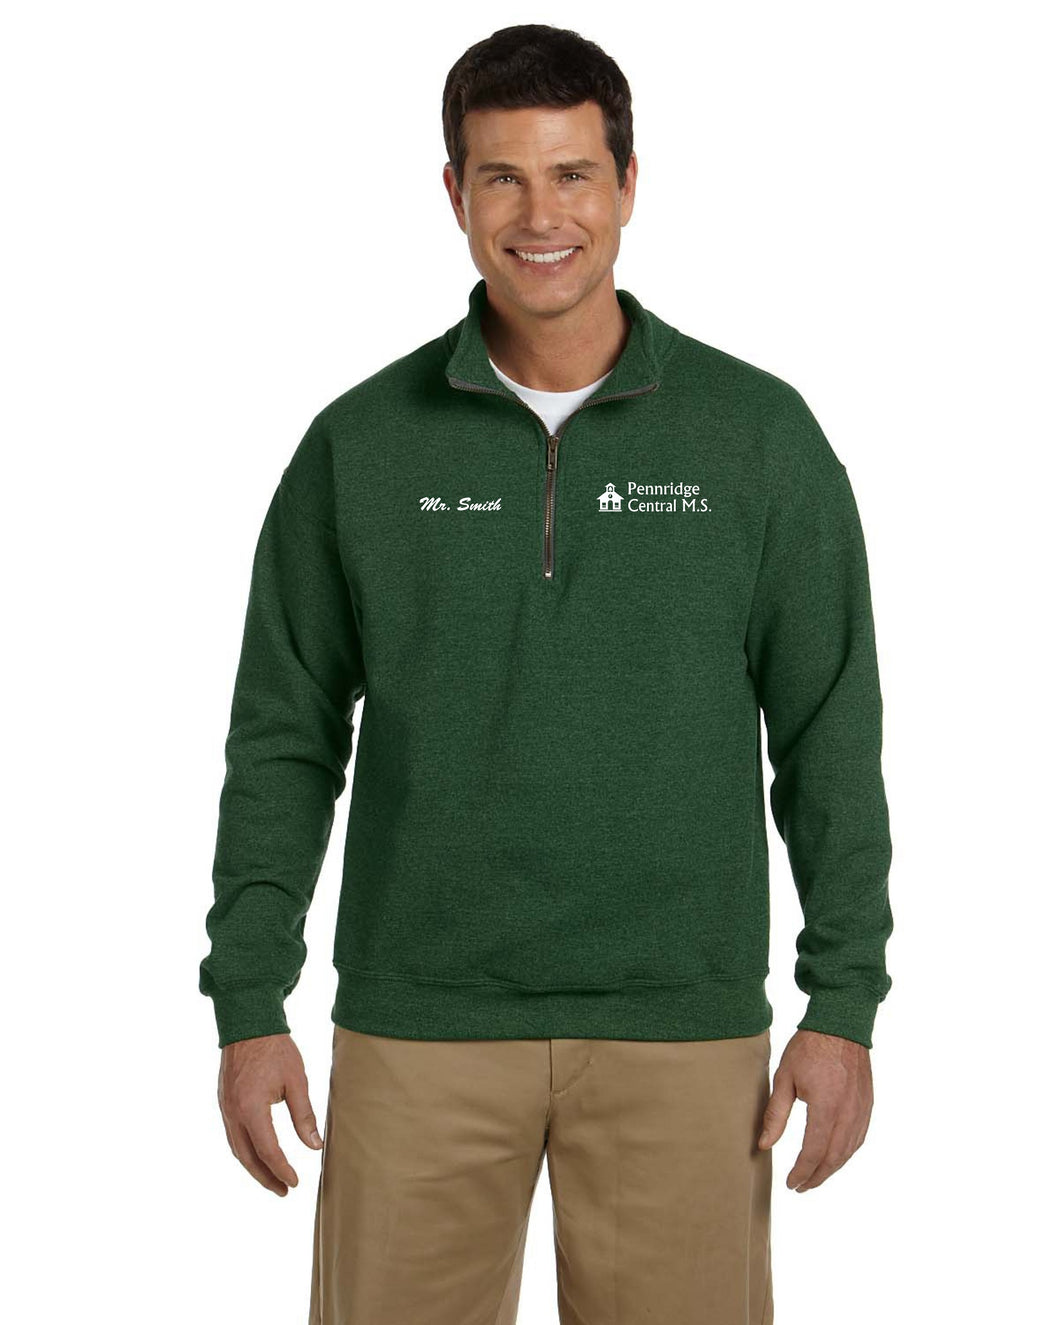 Penn Central Men's 1/4 Zip Pullover w/ Left Chest Embroidery G188